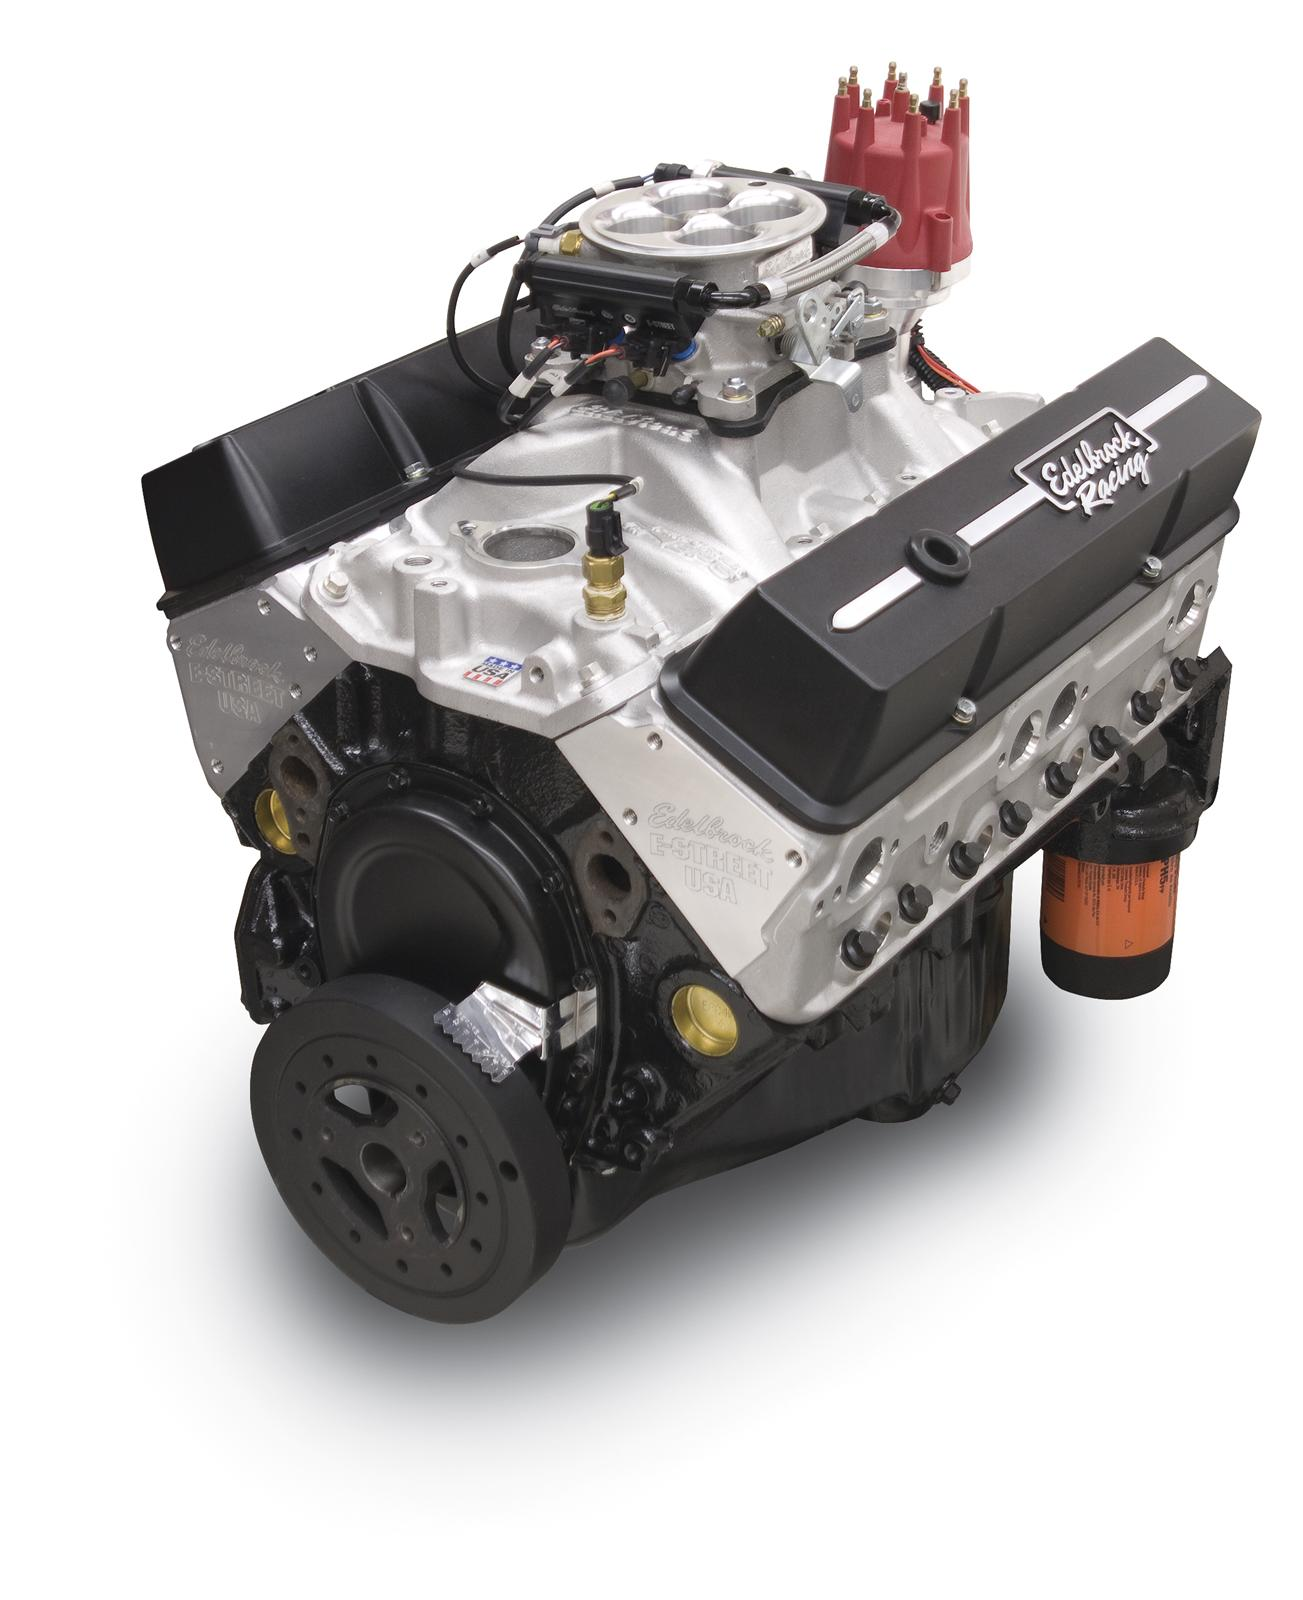 Chevrolet Impala Convertible Crate Chevy Small Block in addition Speedmaster Dual Plane Intake in addition  in addition Rc Z Gm Performance Goodwrench Small Block Crate Motor likewise D Dde Ae Adc Bc Bc. on 350 small block crate engine